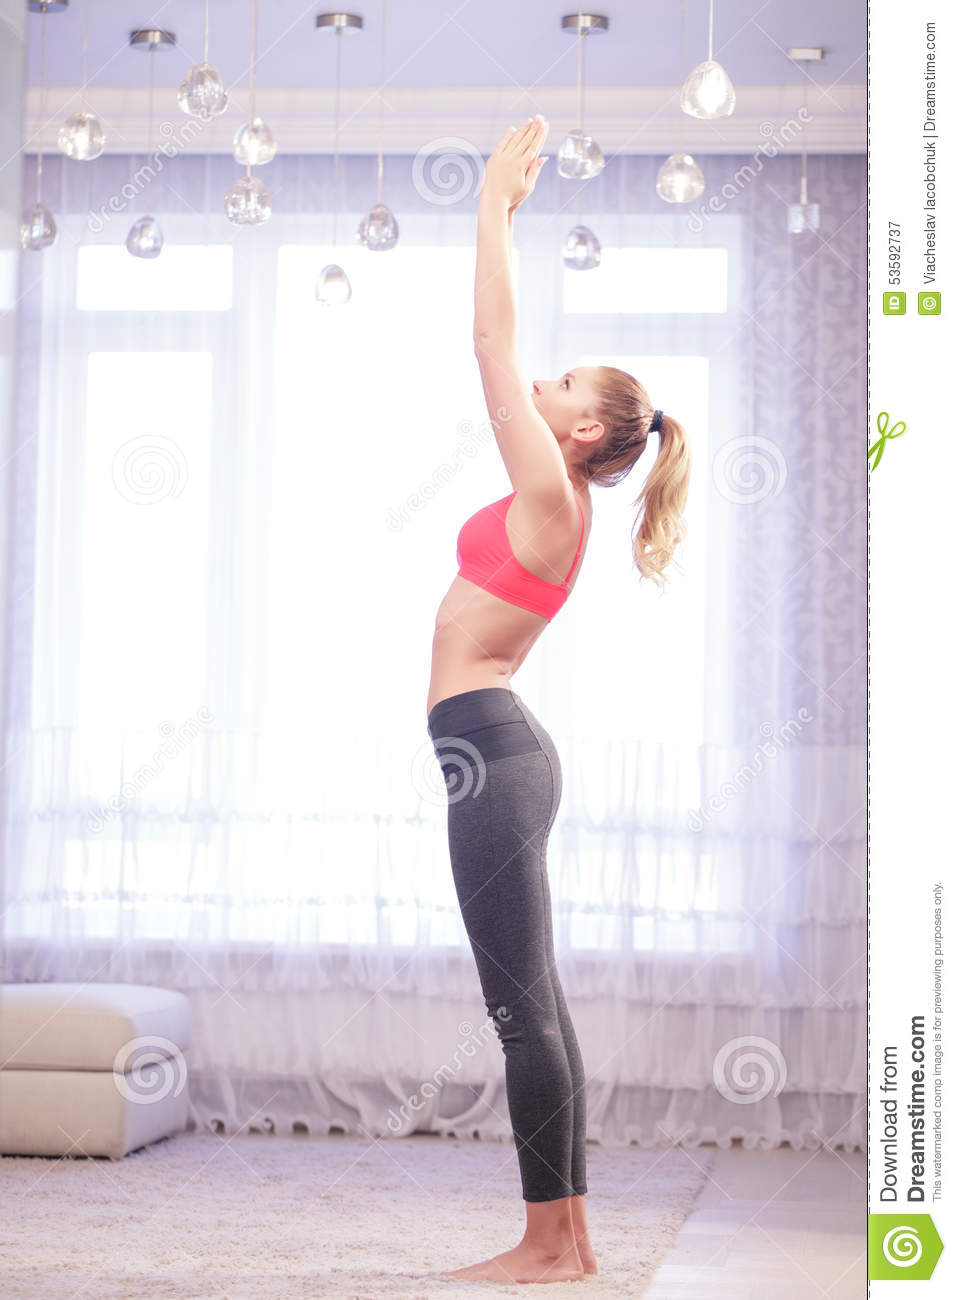 Woman doing sun salutation yoga pose stock image image of woman doing sun salutation yoga pose kristyandbryce Images